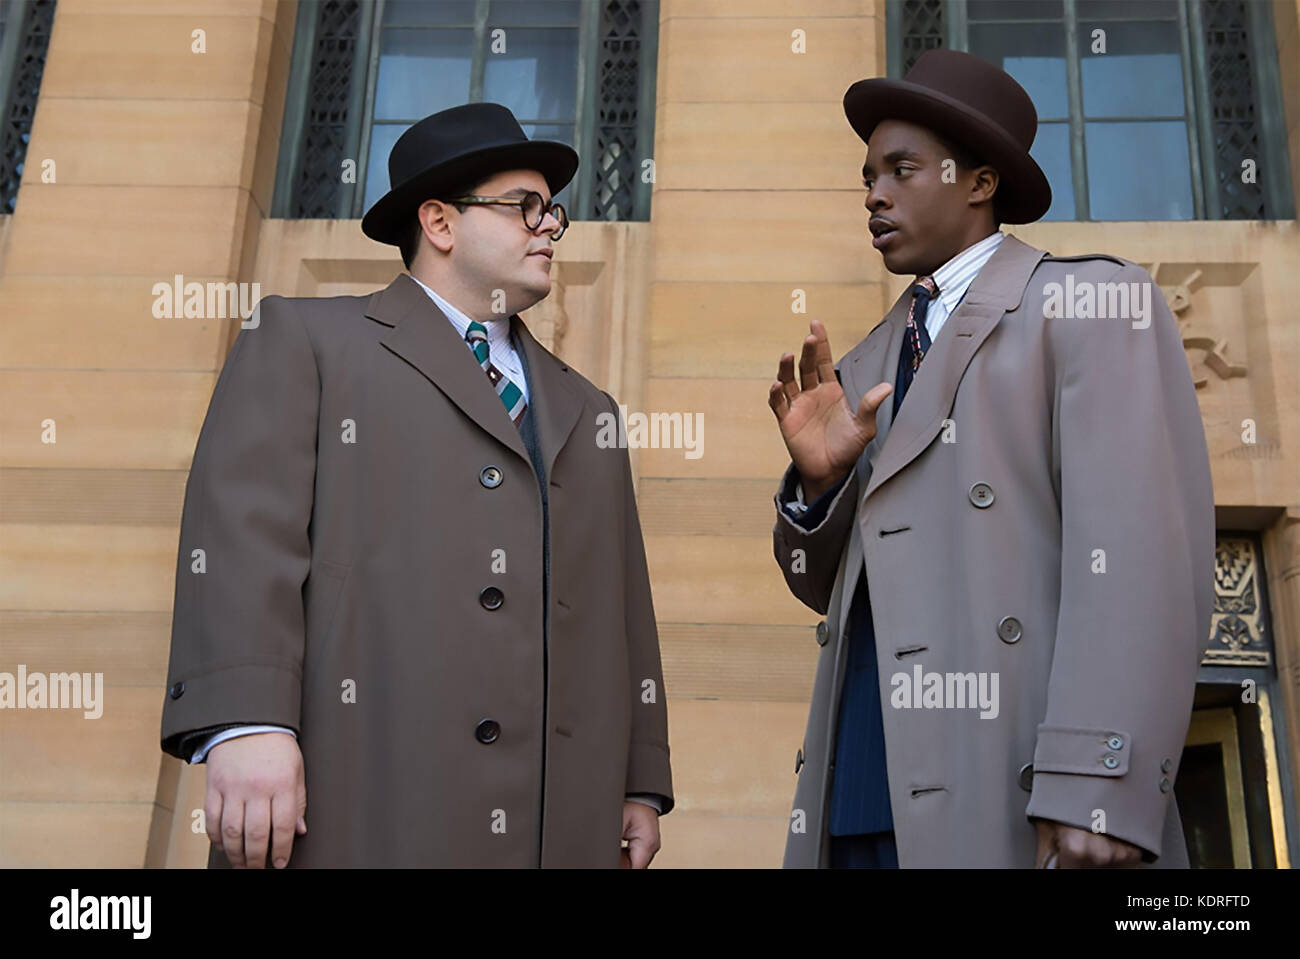 MARSHALL 2017 Chestnut Ridge Productions film with Josh Gad at left and Chadwick Boseman - Stock Image